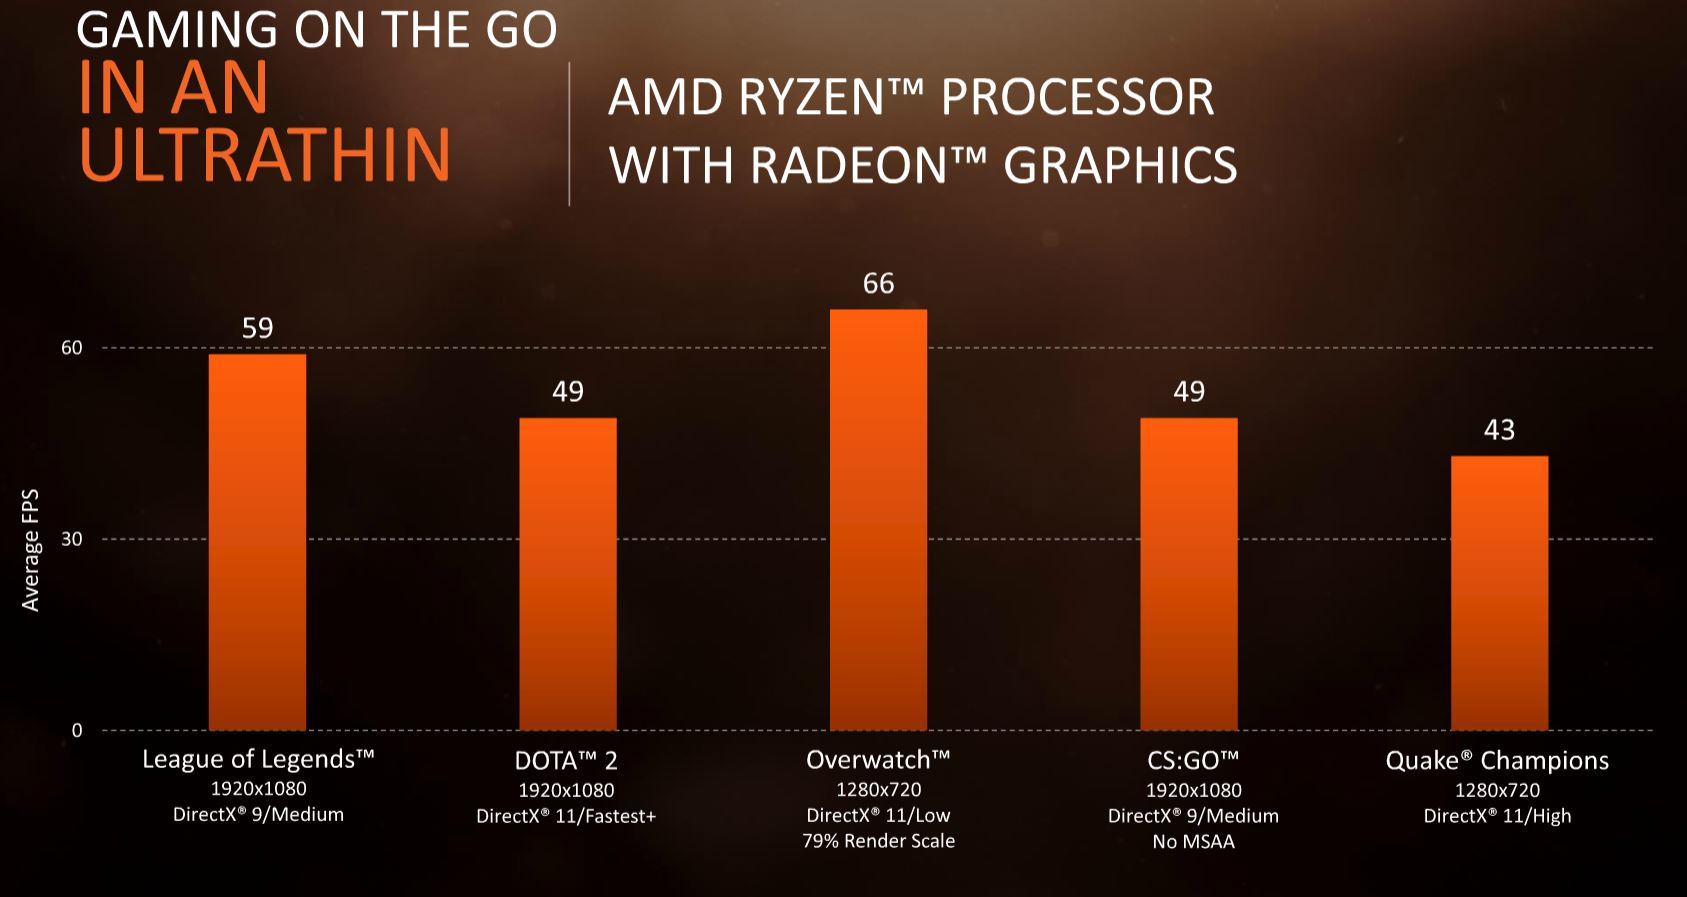 amd-ryzen-mobile-vega-gpu-low-power-games-jpg.6701